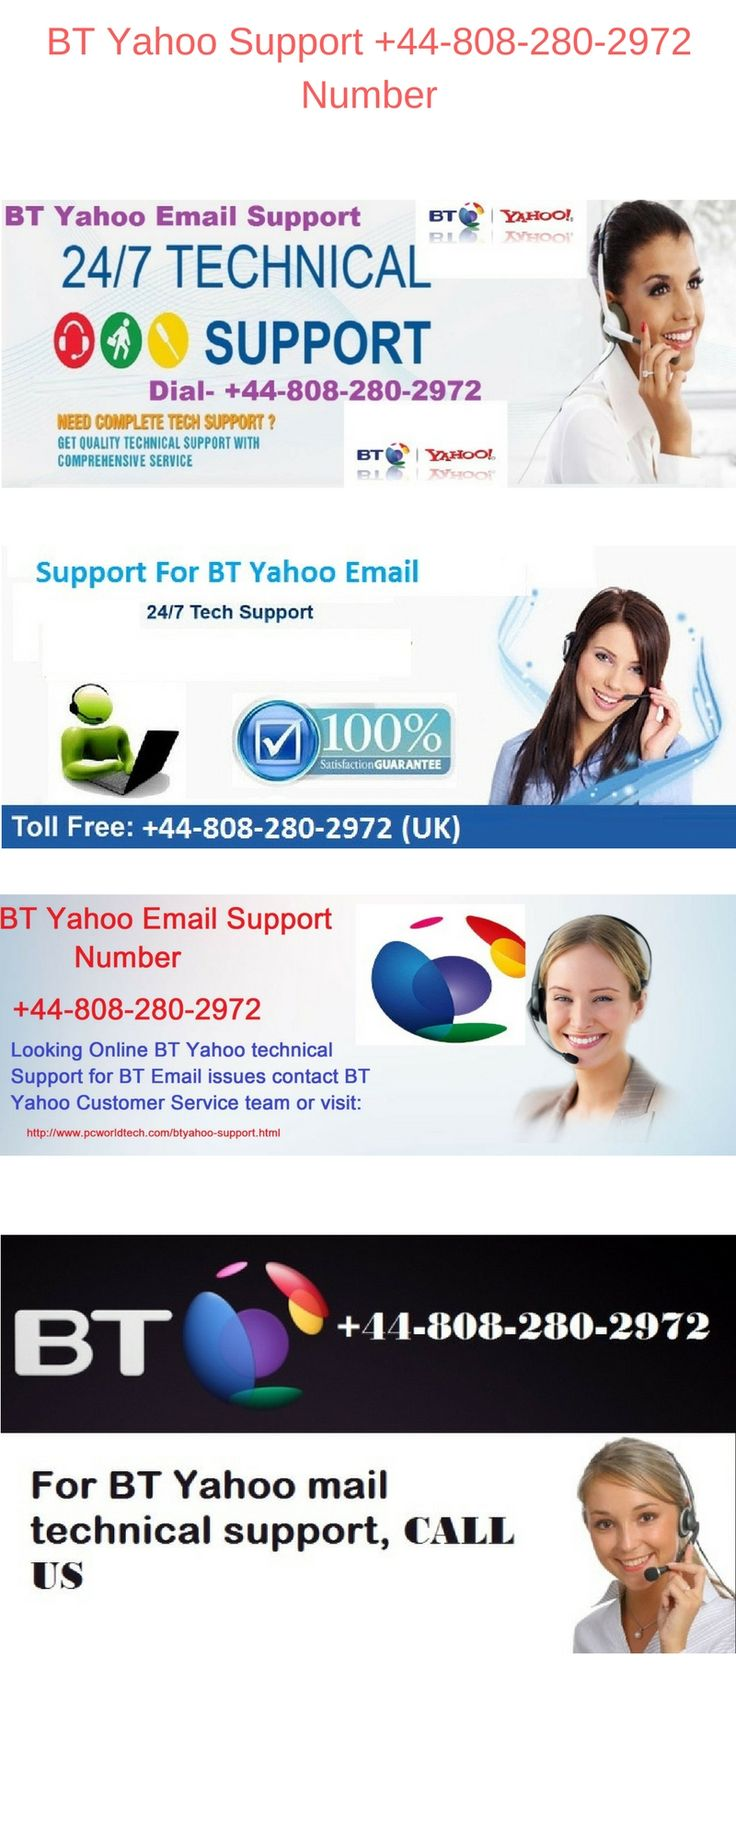 Just contact toll free BT Yahoo Support +44-808-280-2972 number, if you are facing issues with BT yahoo email account. Our technicians will provide you the best solution to recover your yahoo mail account and password in the UK. http://www.pcworldtech.com/btyahoo-support.html